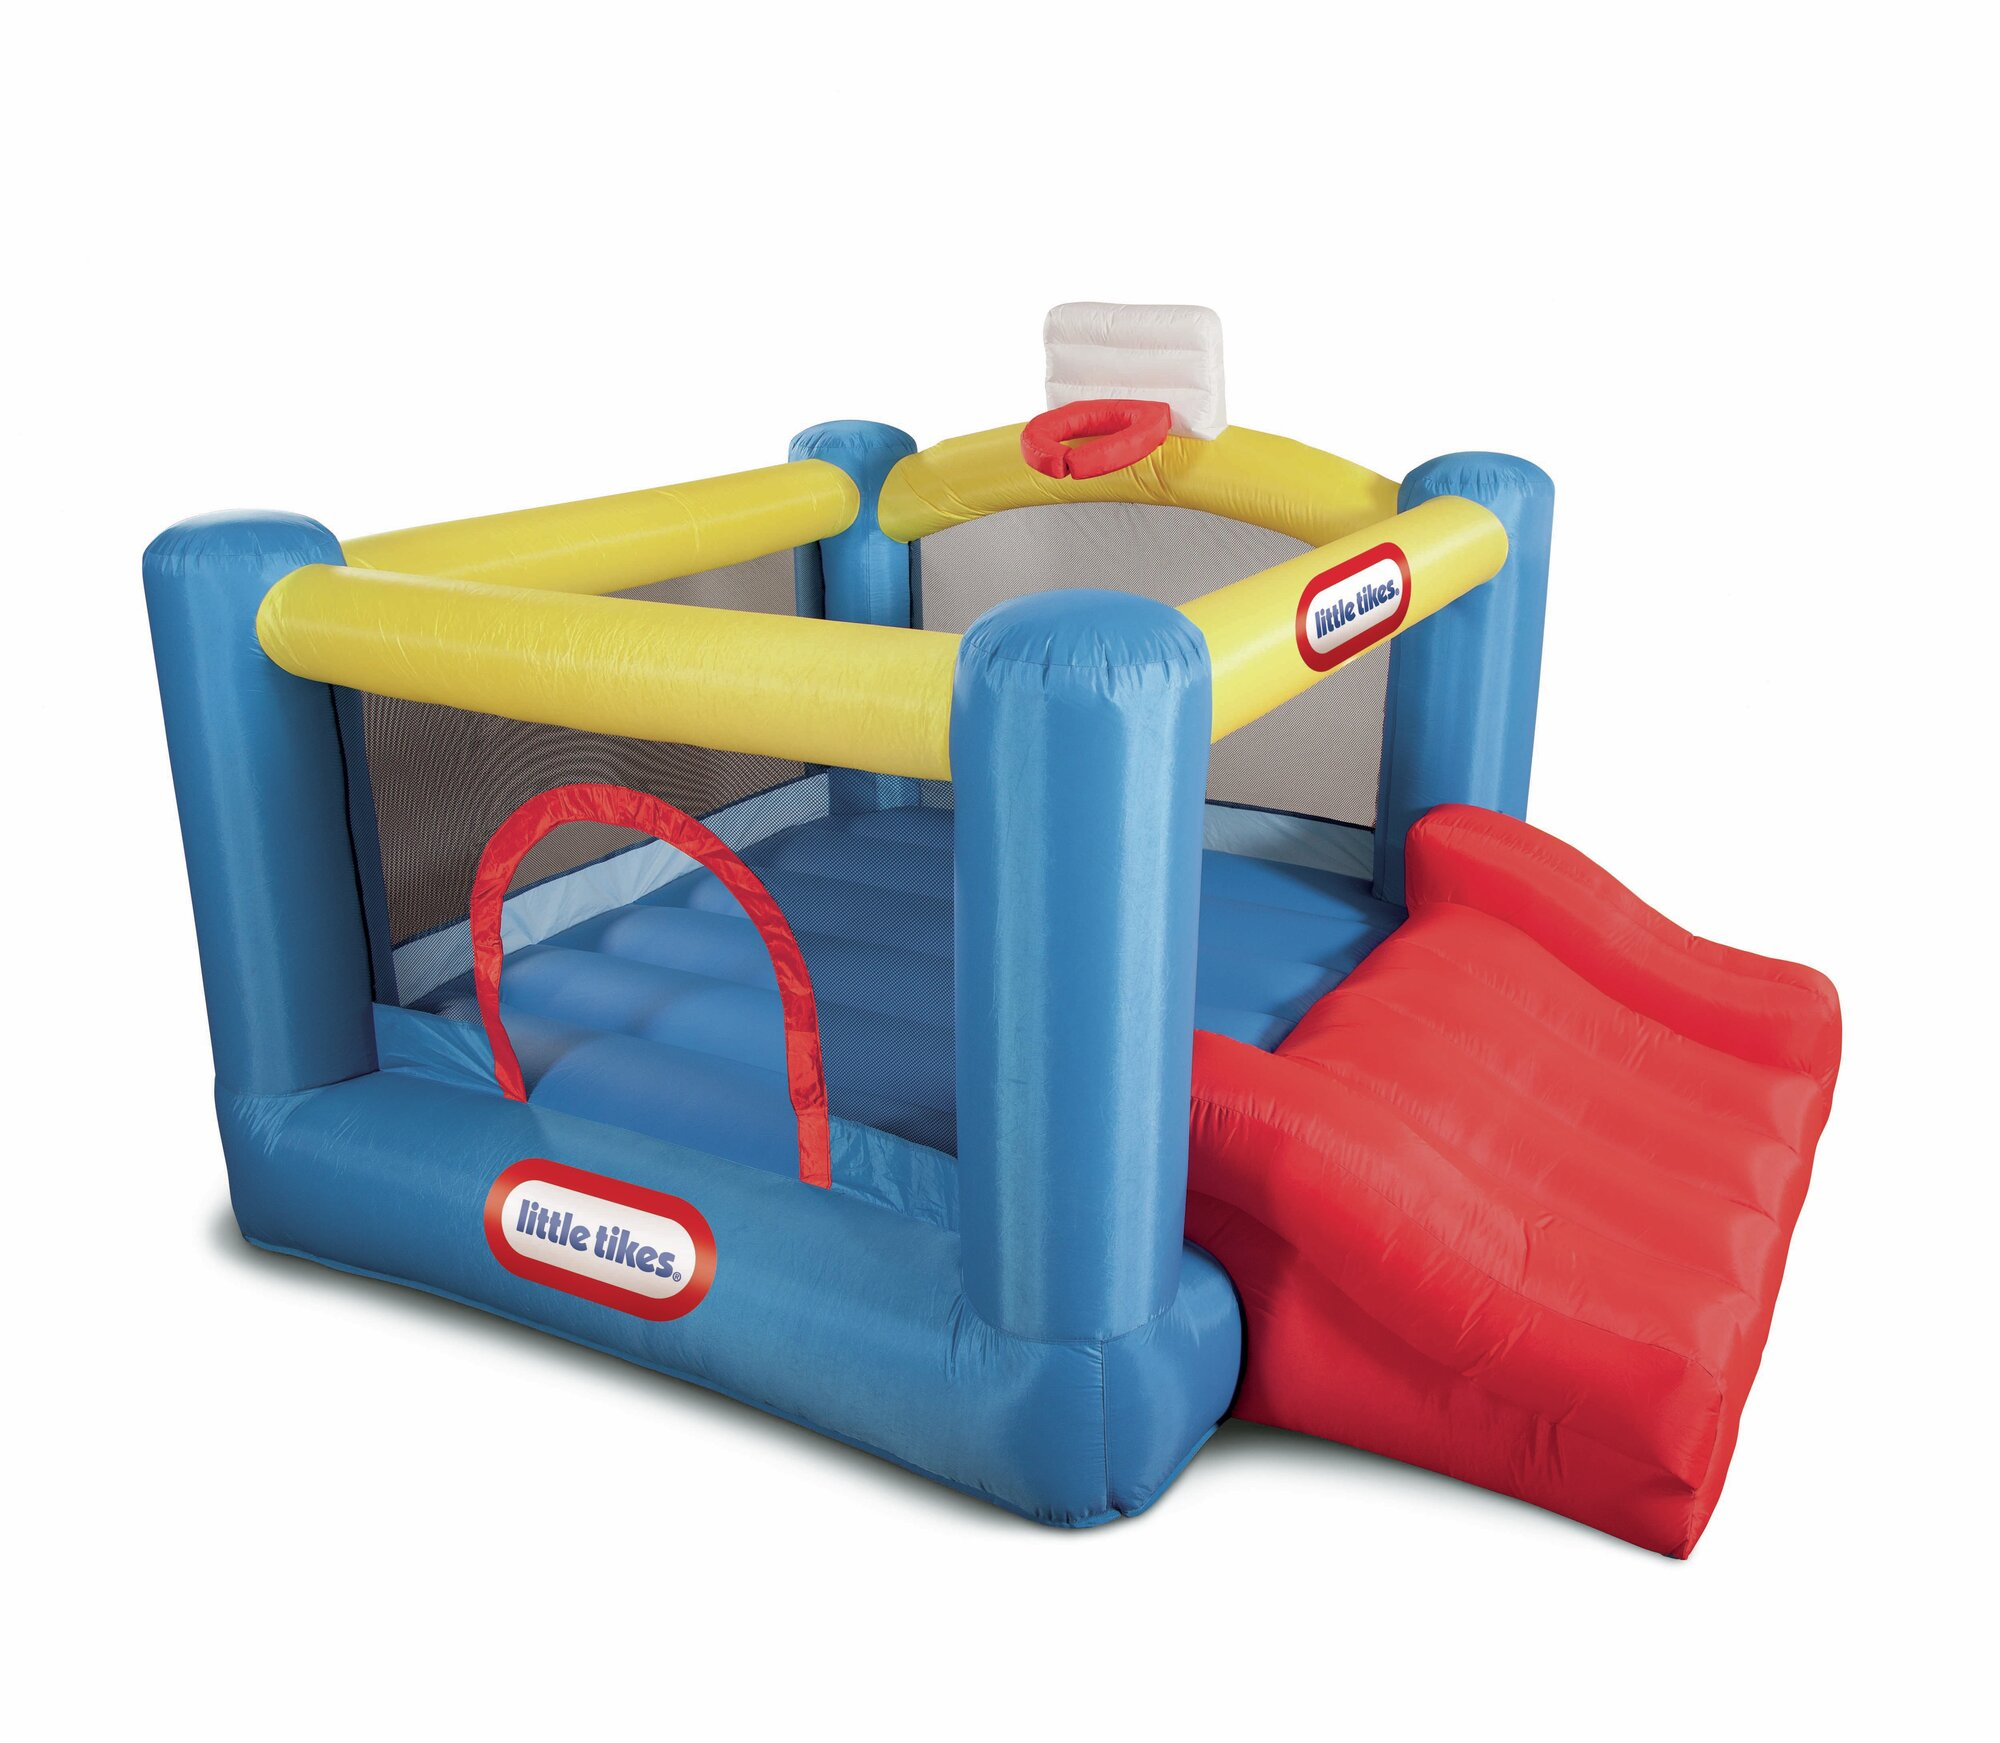 Little Tikes Jr. Sports 'n Slide Bounce House